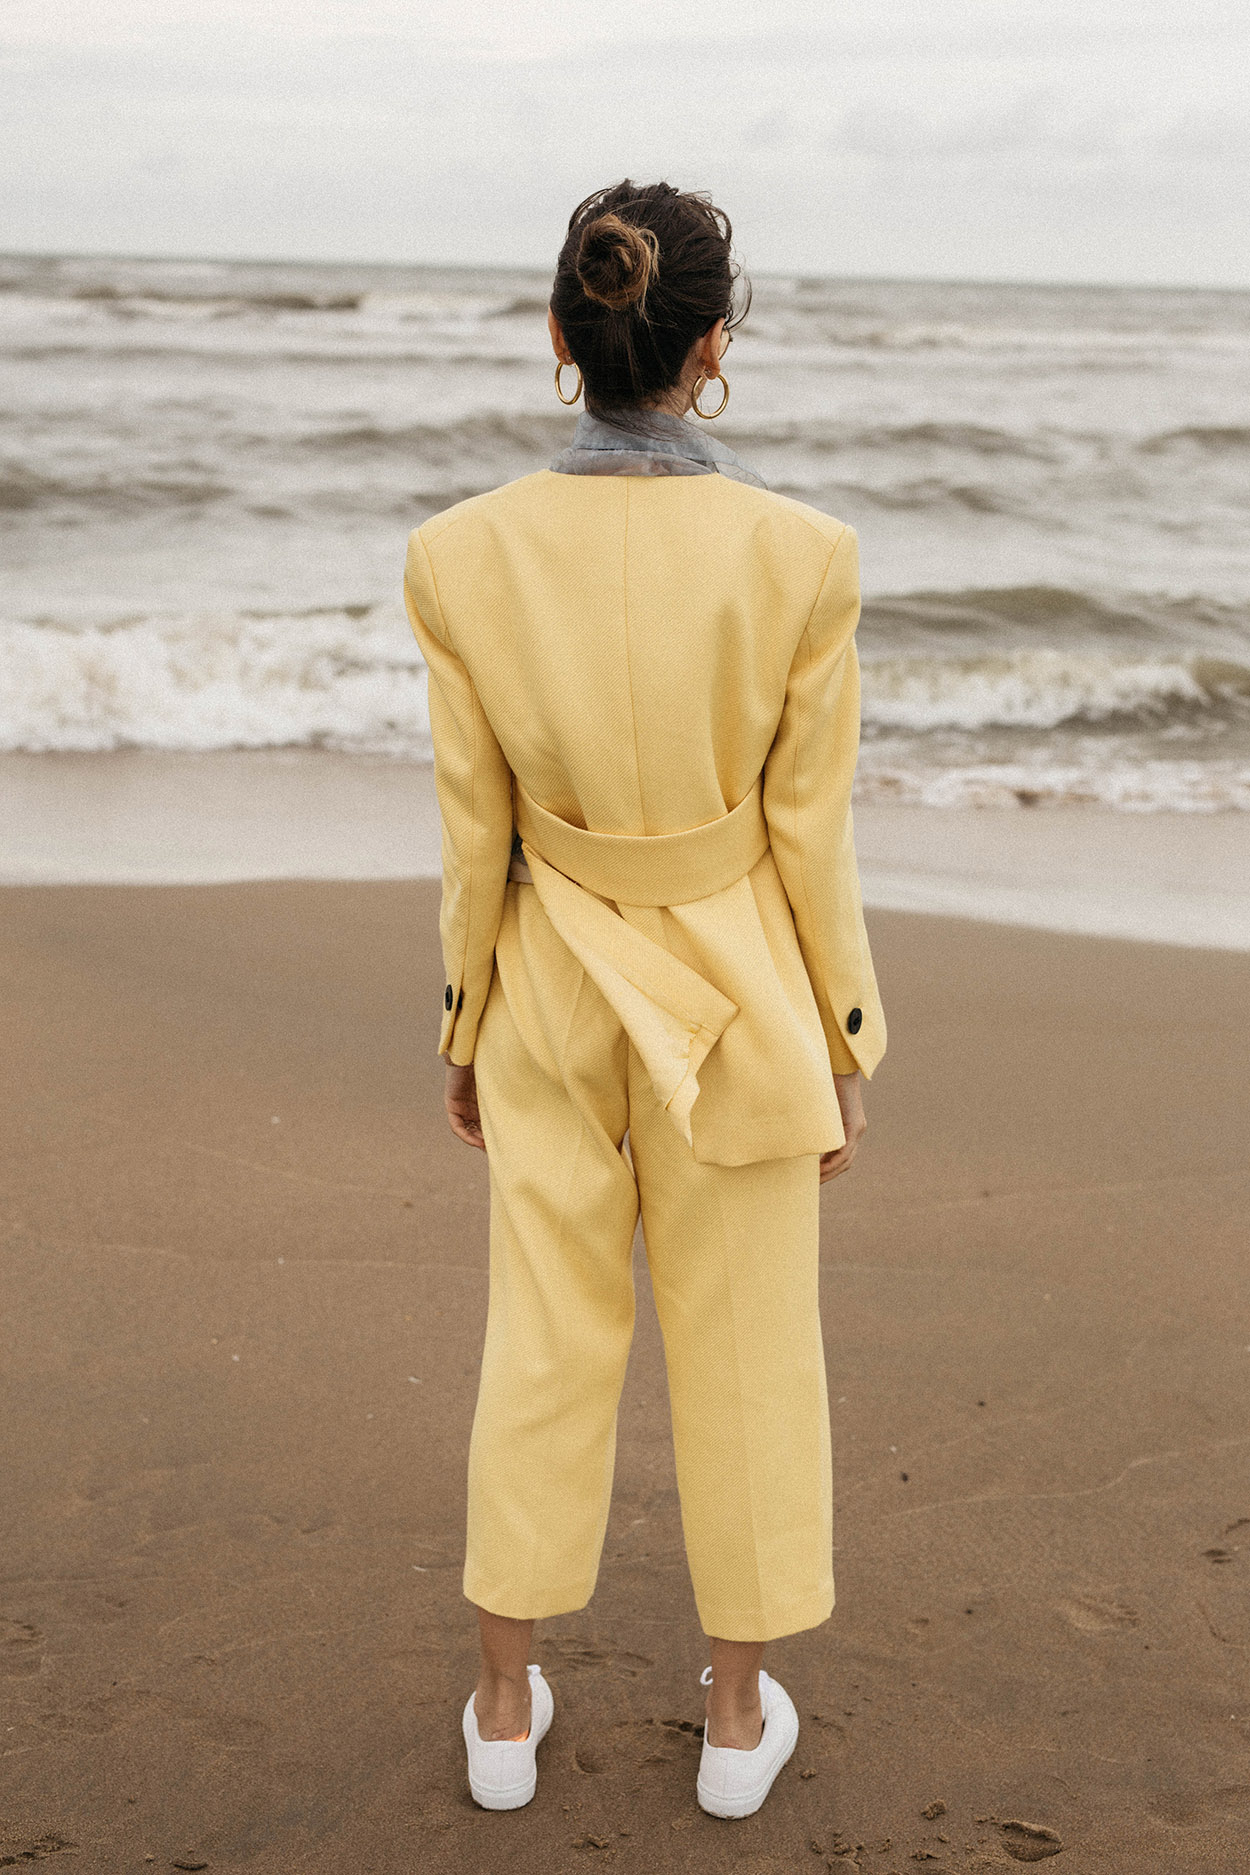 Colorful-suit-trend-yellow-by-malene-birger-blazer-outfit-ideas-bold-colors-fall-winter-2018-sea-editorial-8.jpg